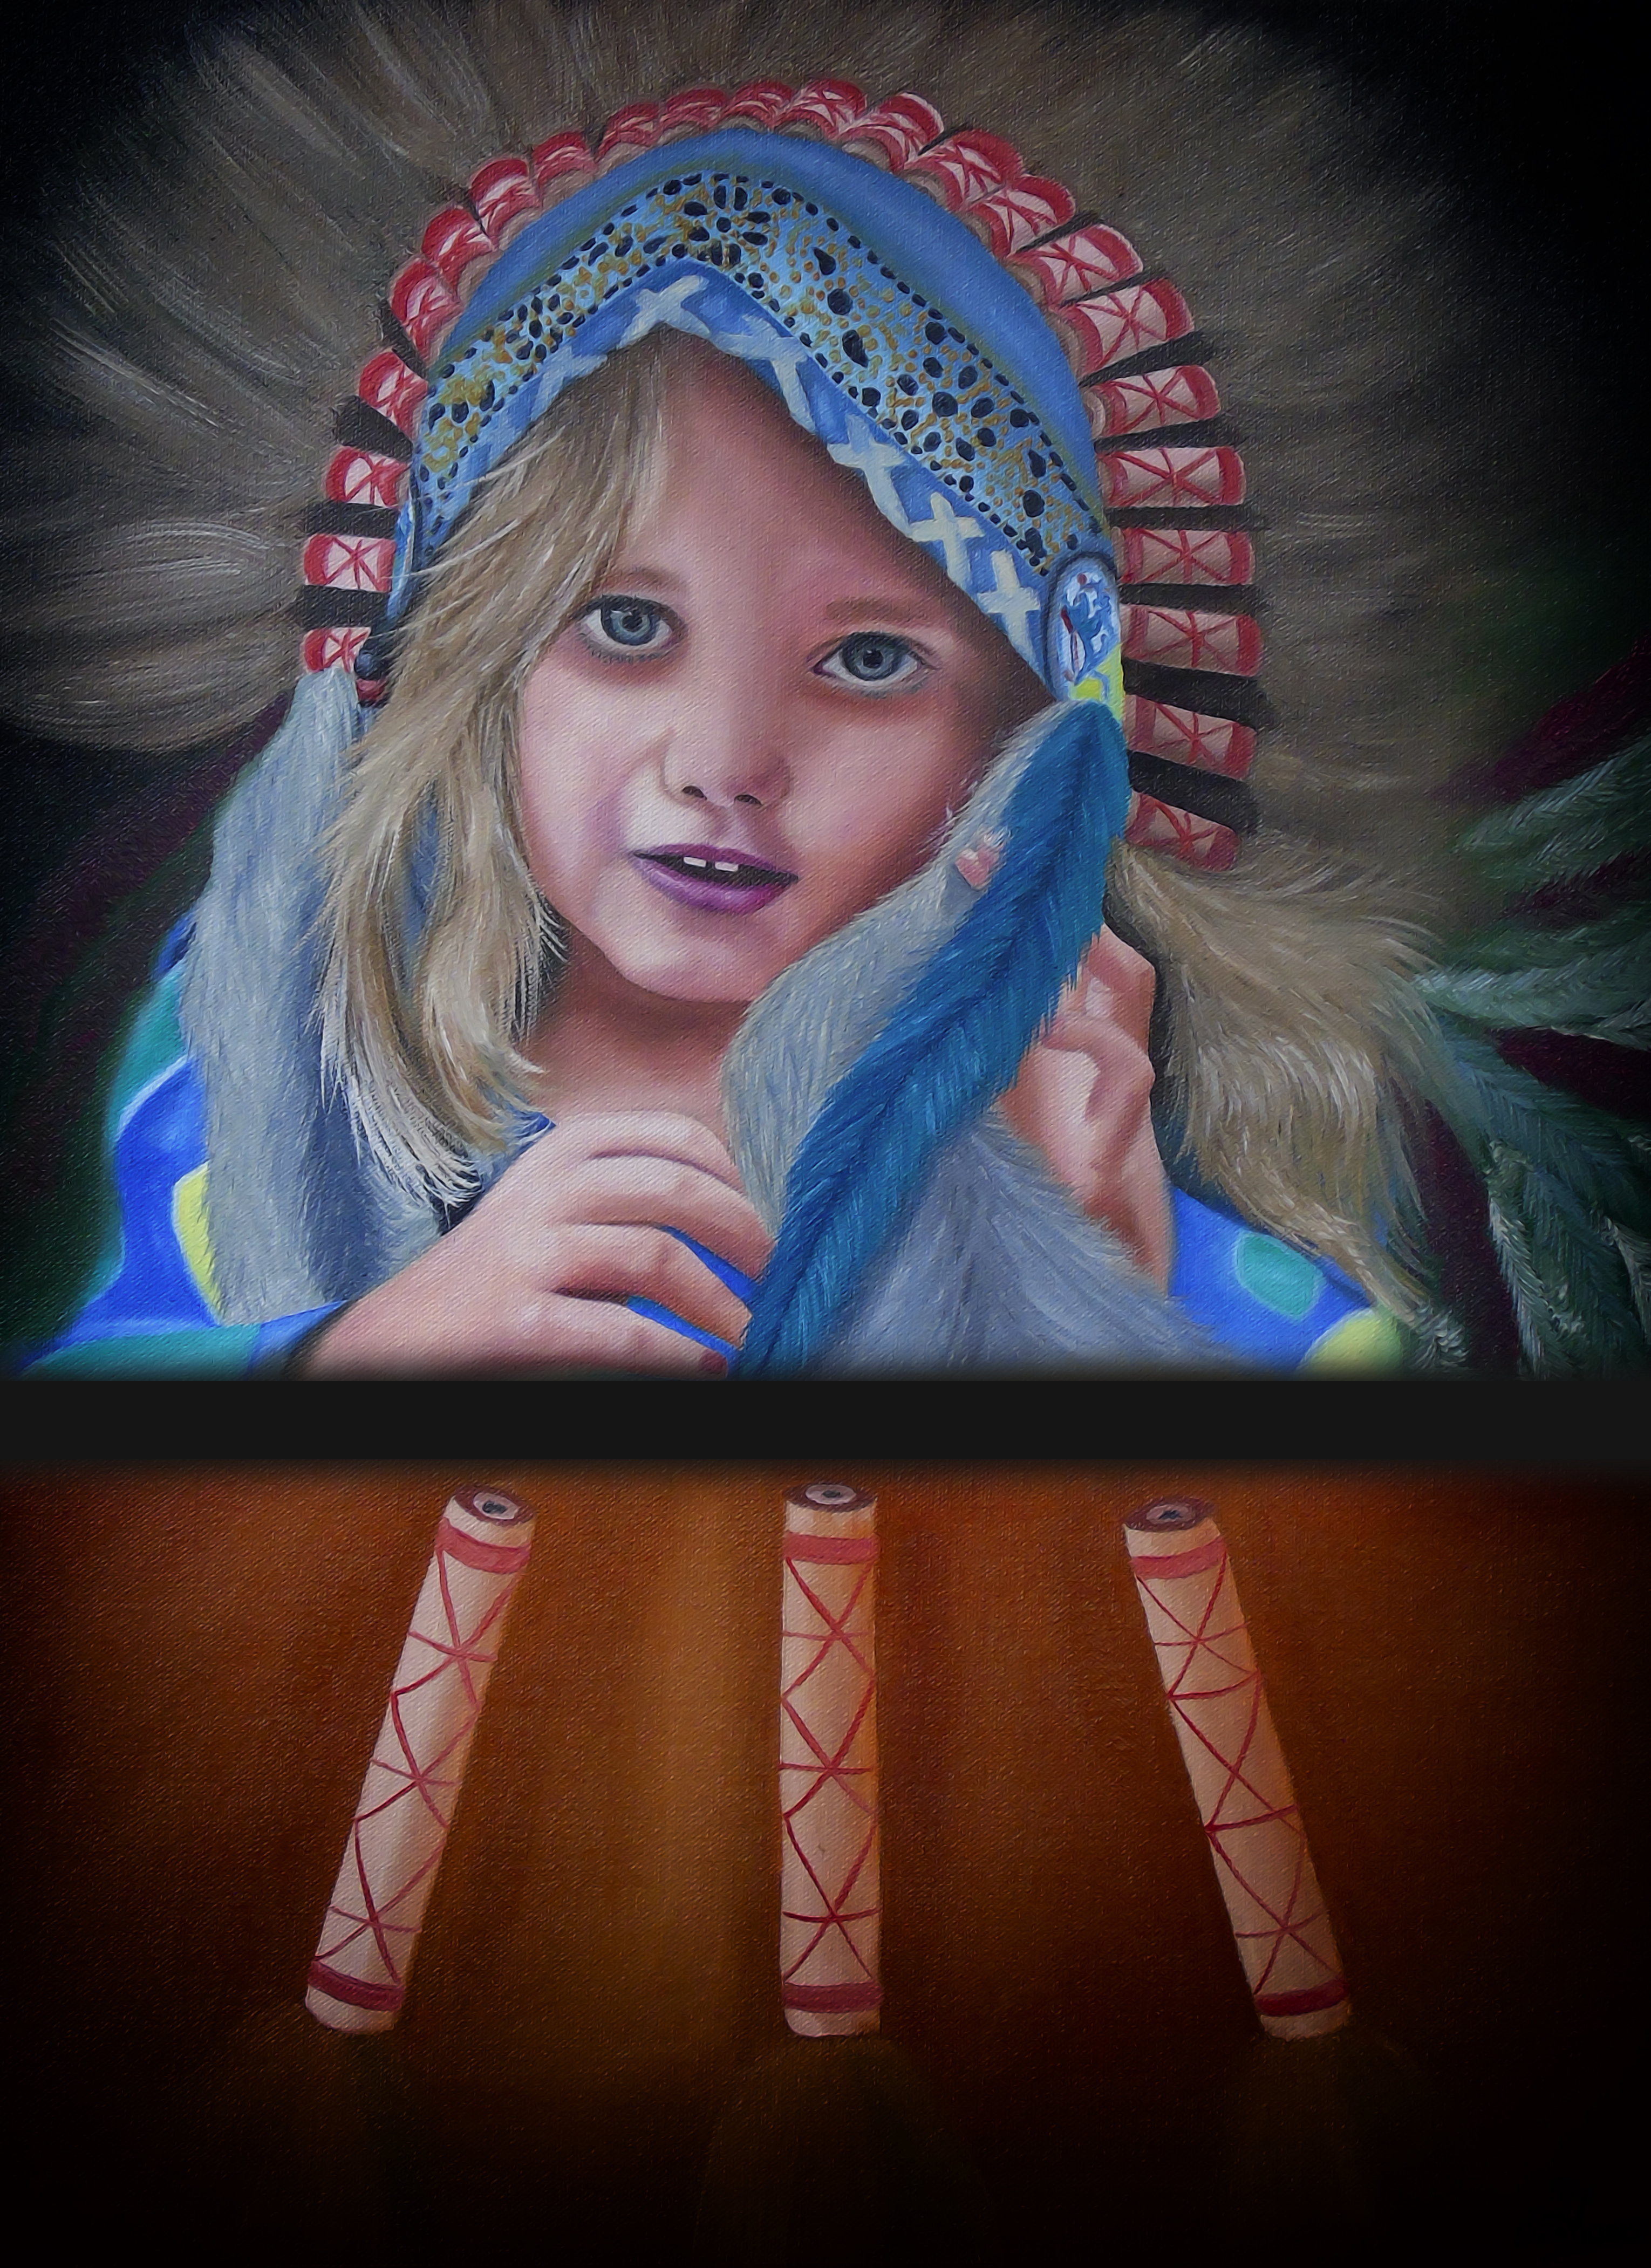 North American Indian Girl 15464